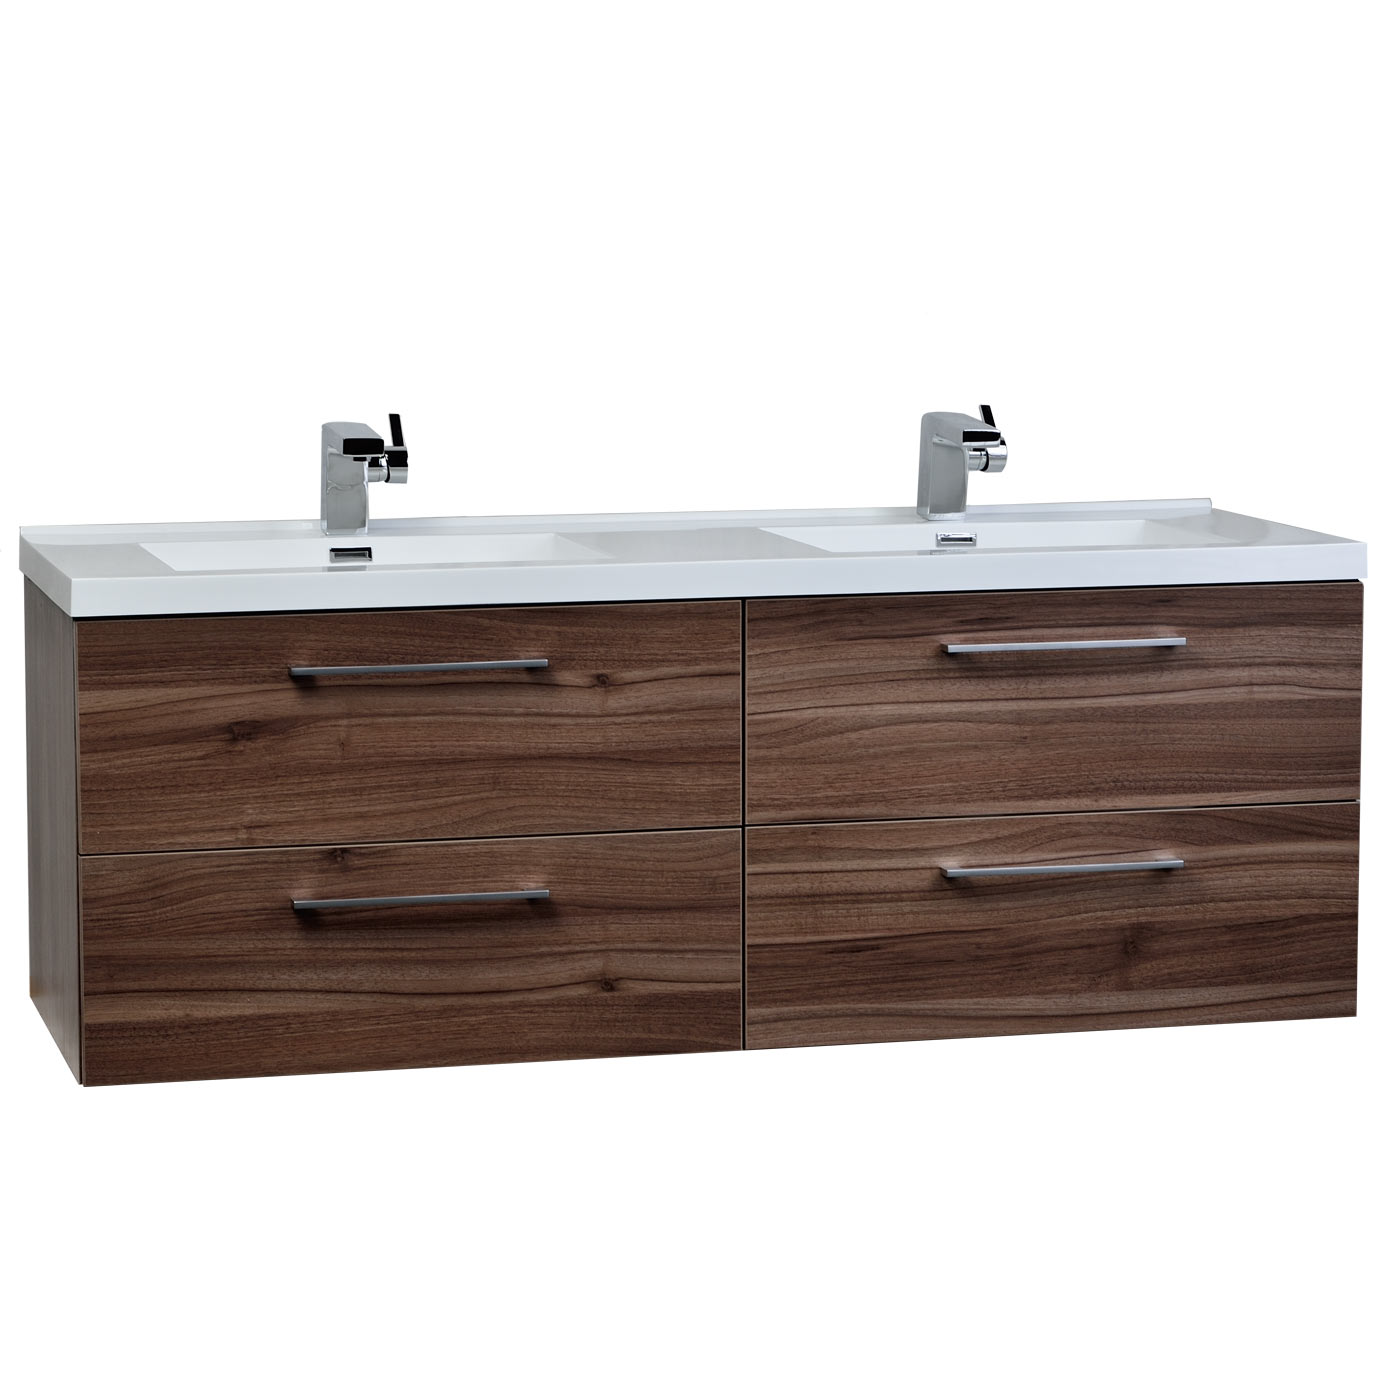 Camino 59 5 inch modern double vanity set wall mount walnut tn a1510 wn - Kona modern bathroom vanity set ...